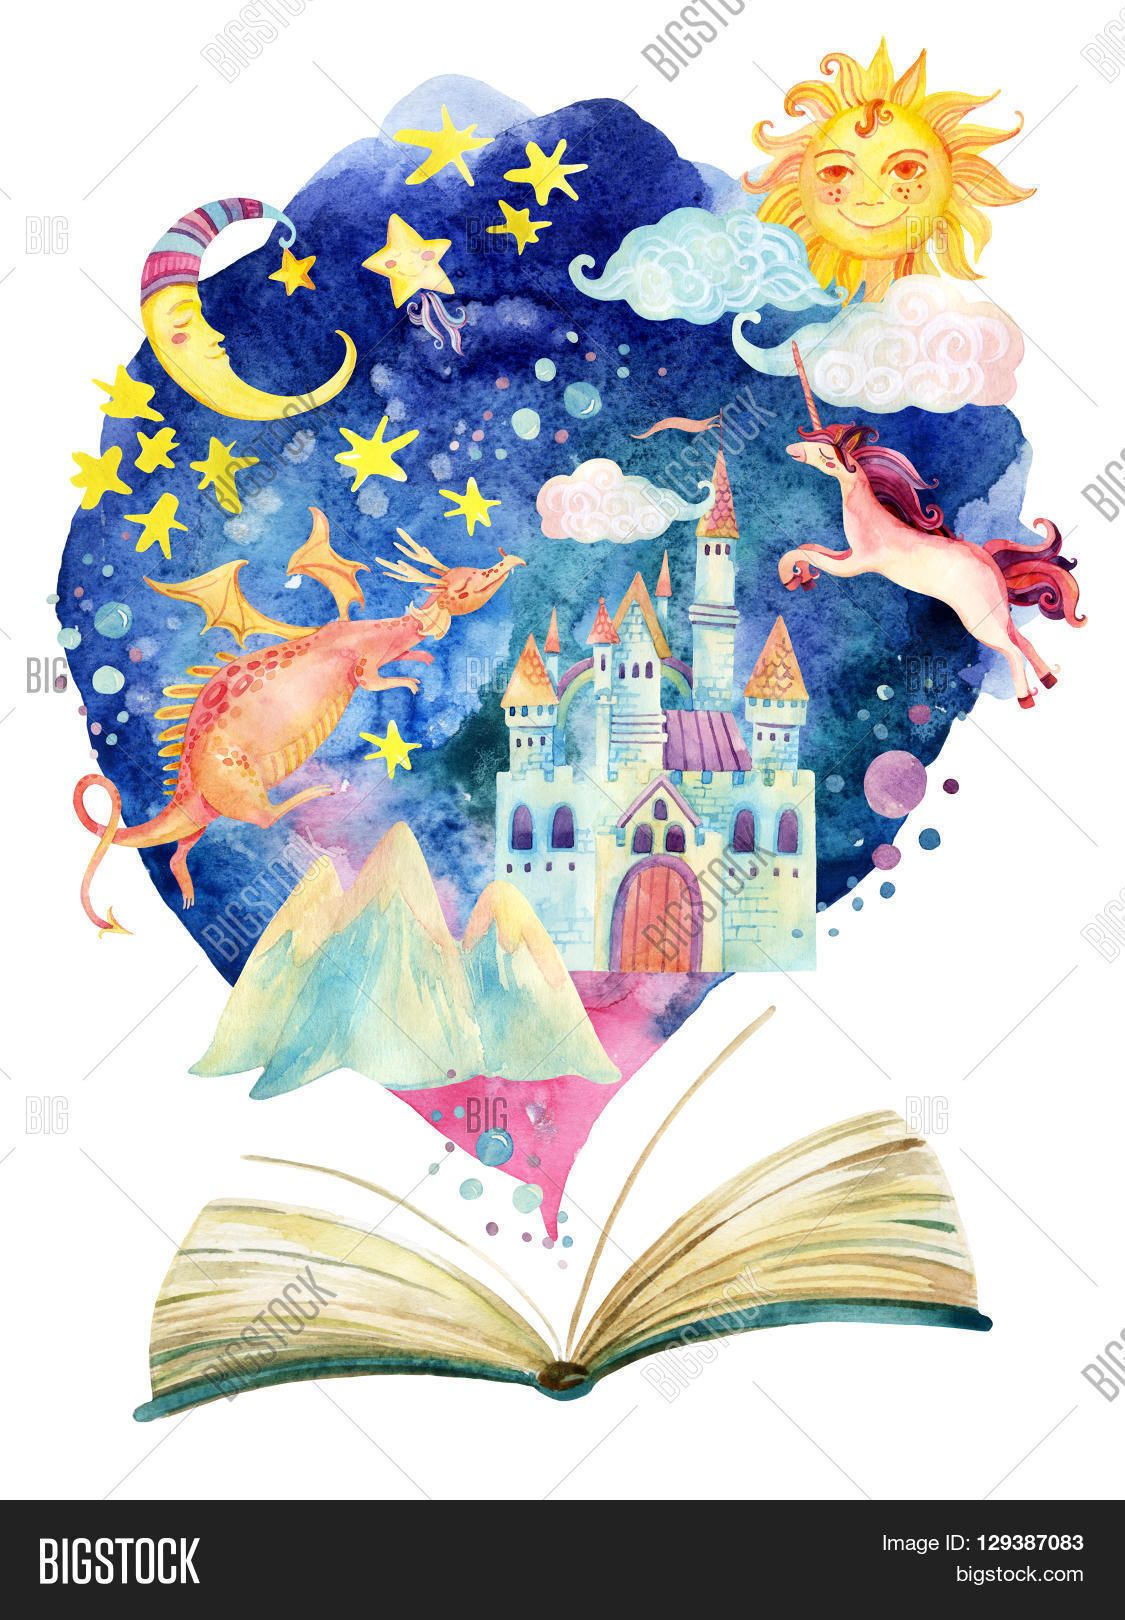 Watercolor books for kids - Watercolor Open Book With Magic World The Fairy Tale World In One Book Starry Sky Magic Castle Flying Dragon And Unicorn Hand Painted Book Illustration